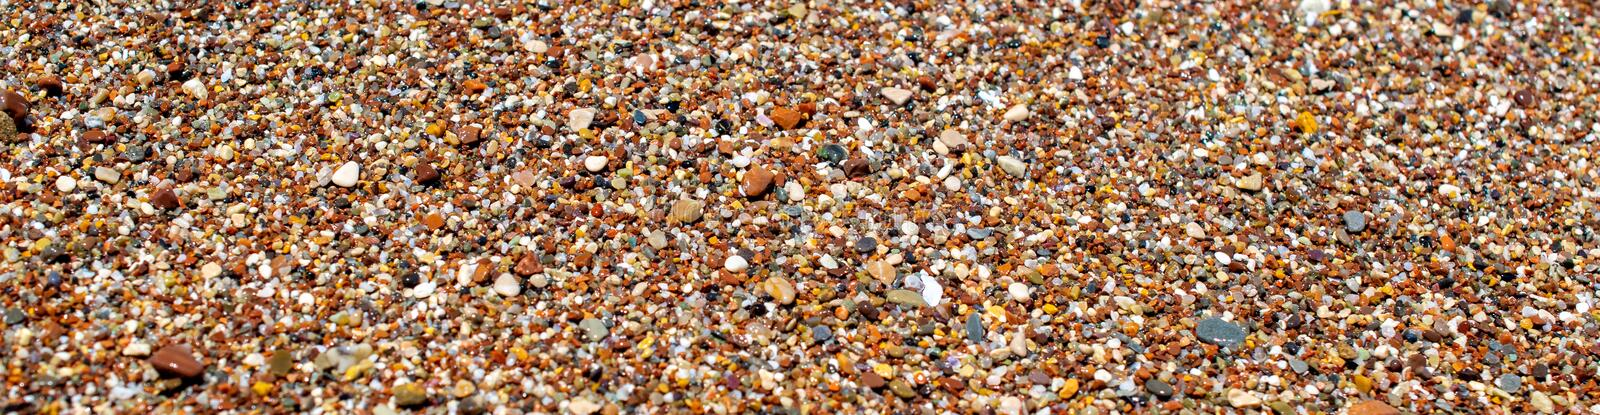 Tiny wet pebbles at the beach. Stone background image. Tiny colorful at the beach. royalty free stock images